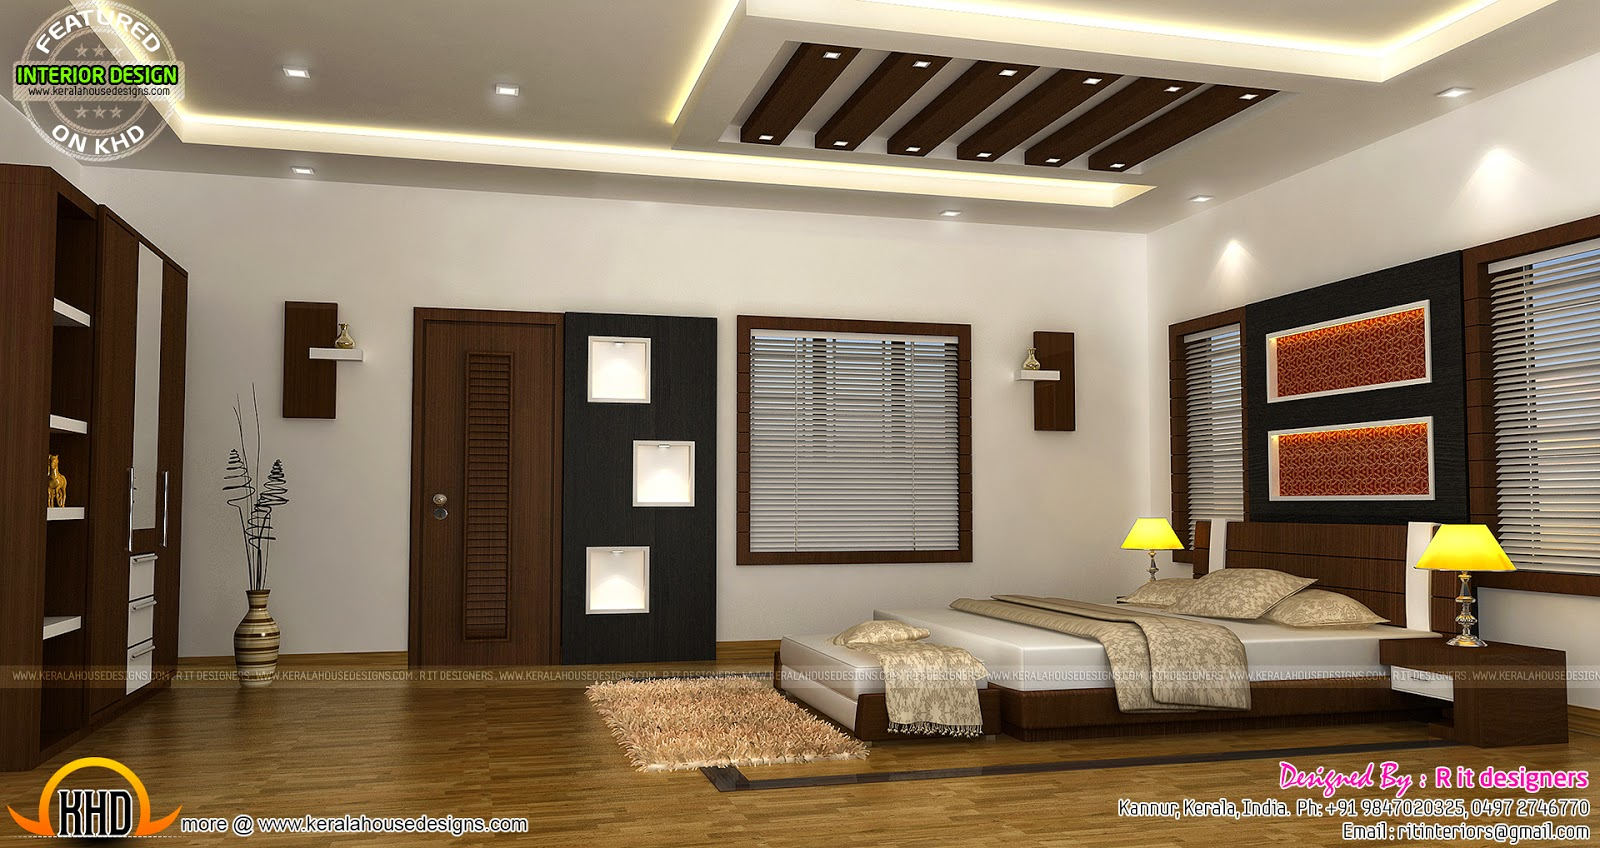 Bedroom interior design with cost kerala home design and floor plans - Home design inside ...